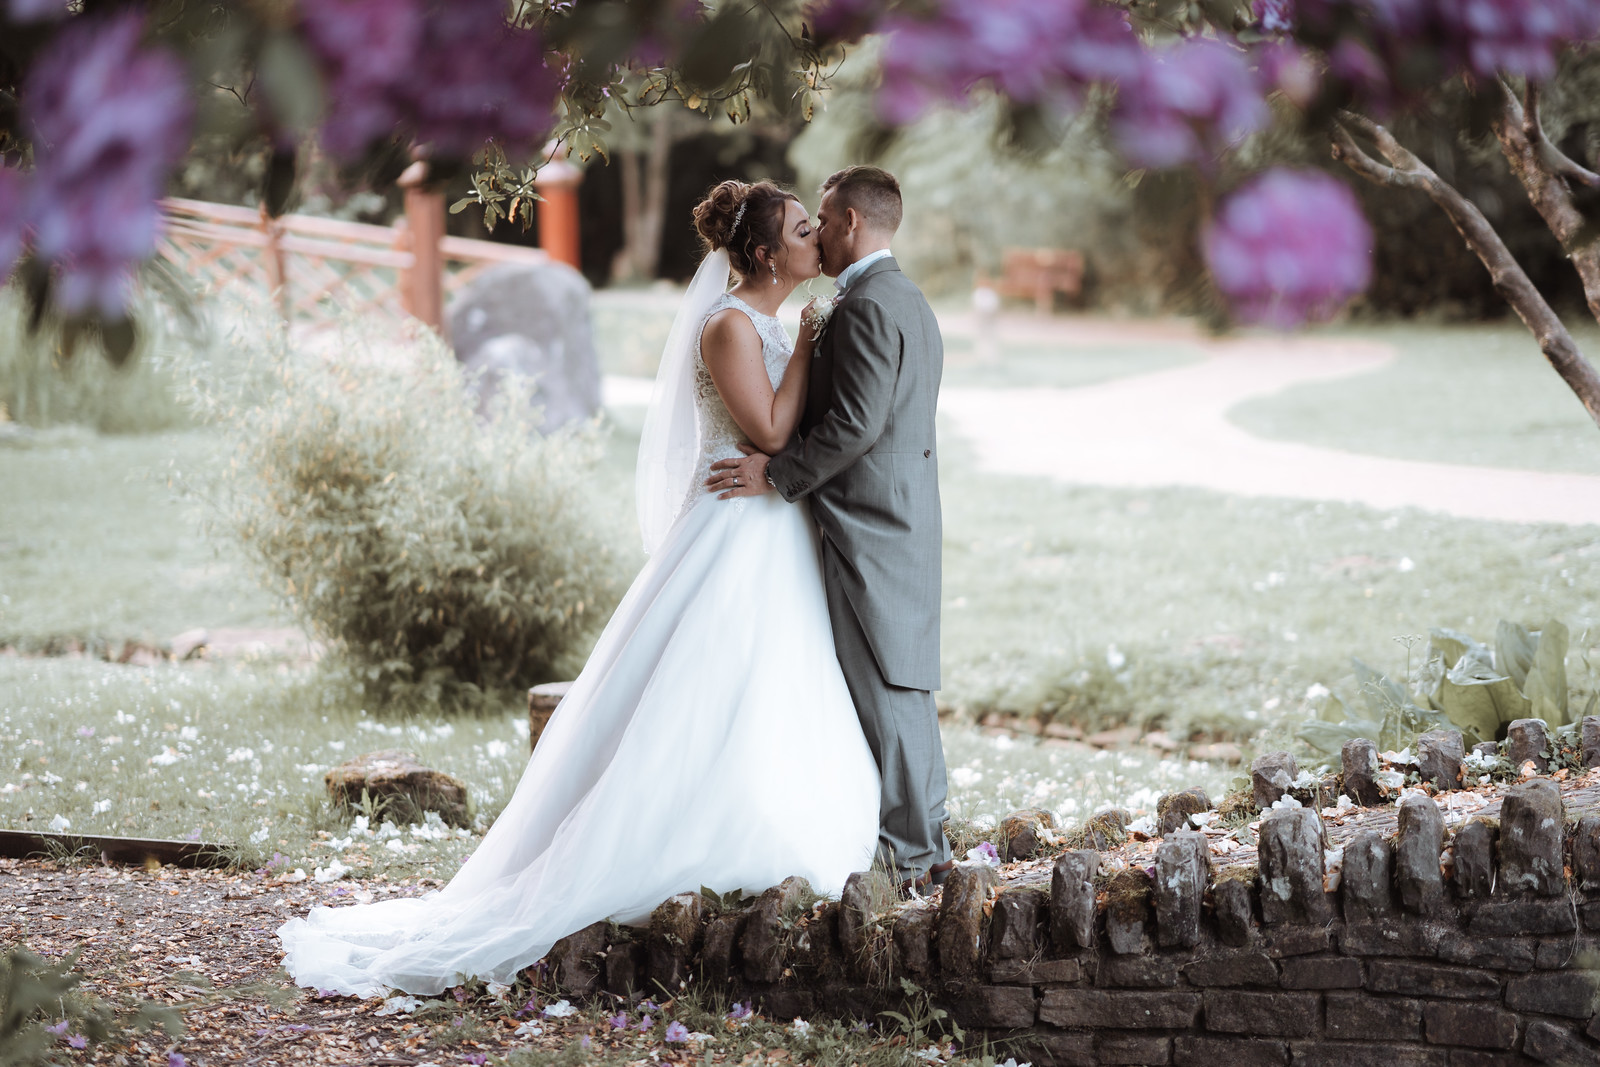 Bride and groom kiss surrounded by beauty of the gardens